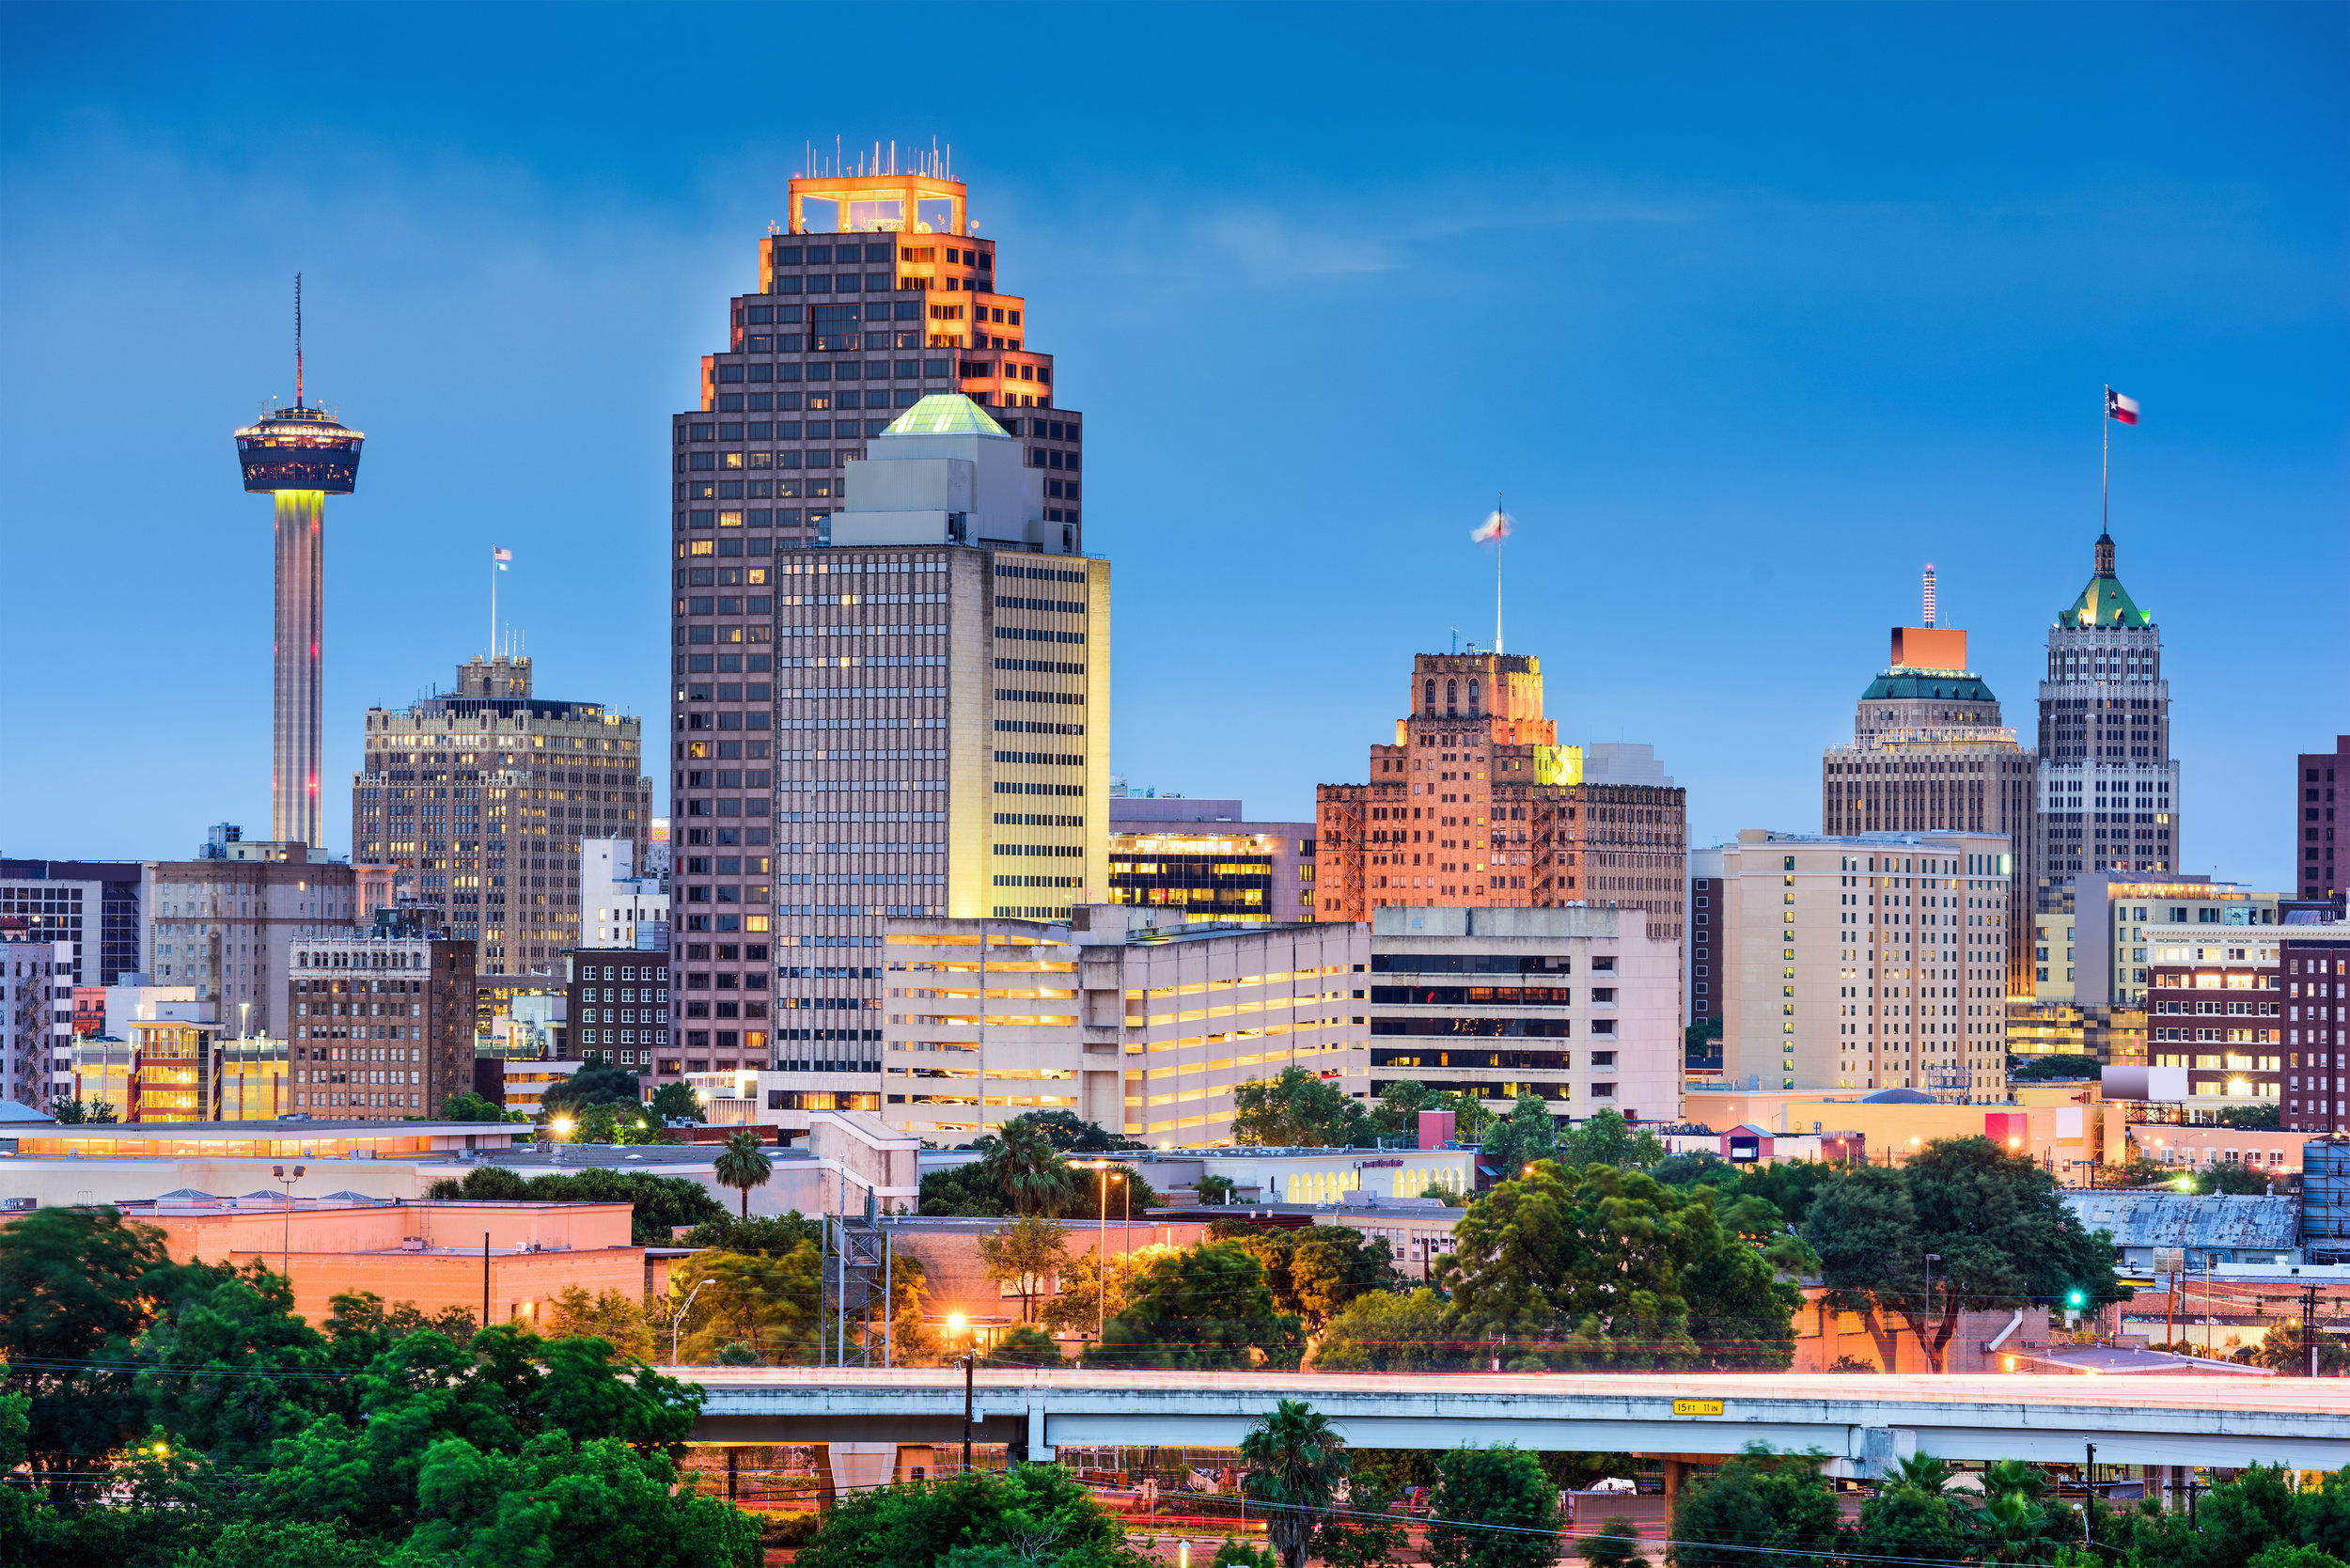 AdobeStock - Downtown San Antonio.jpeg